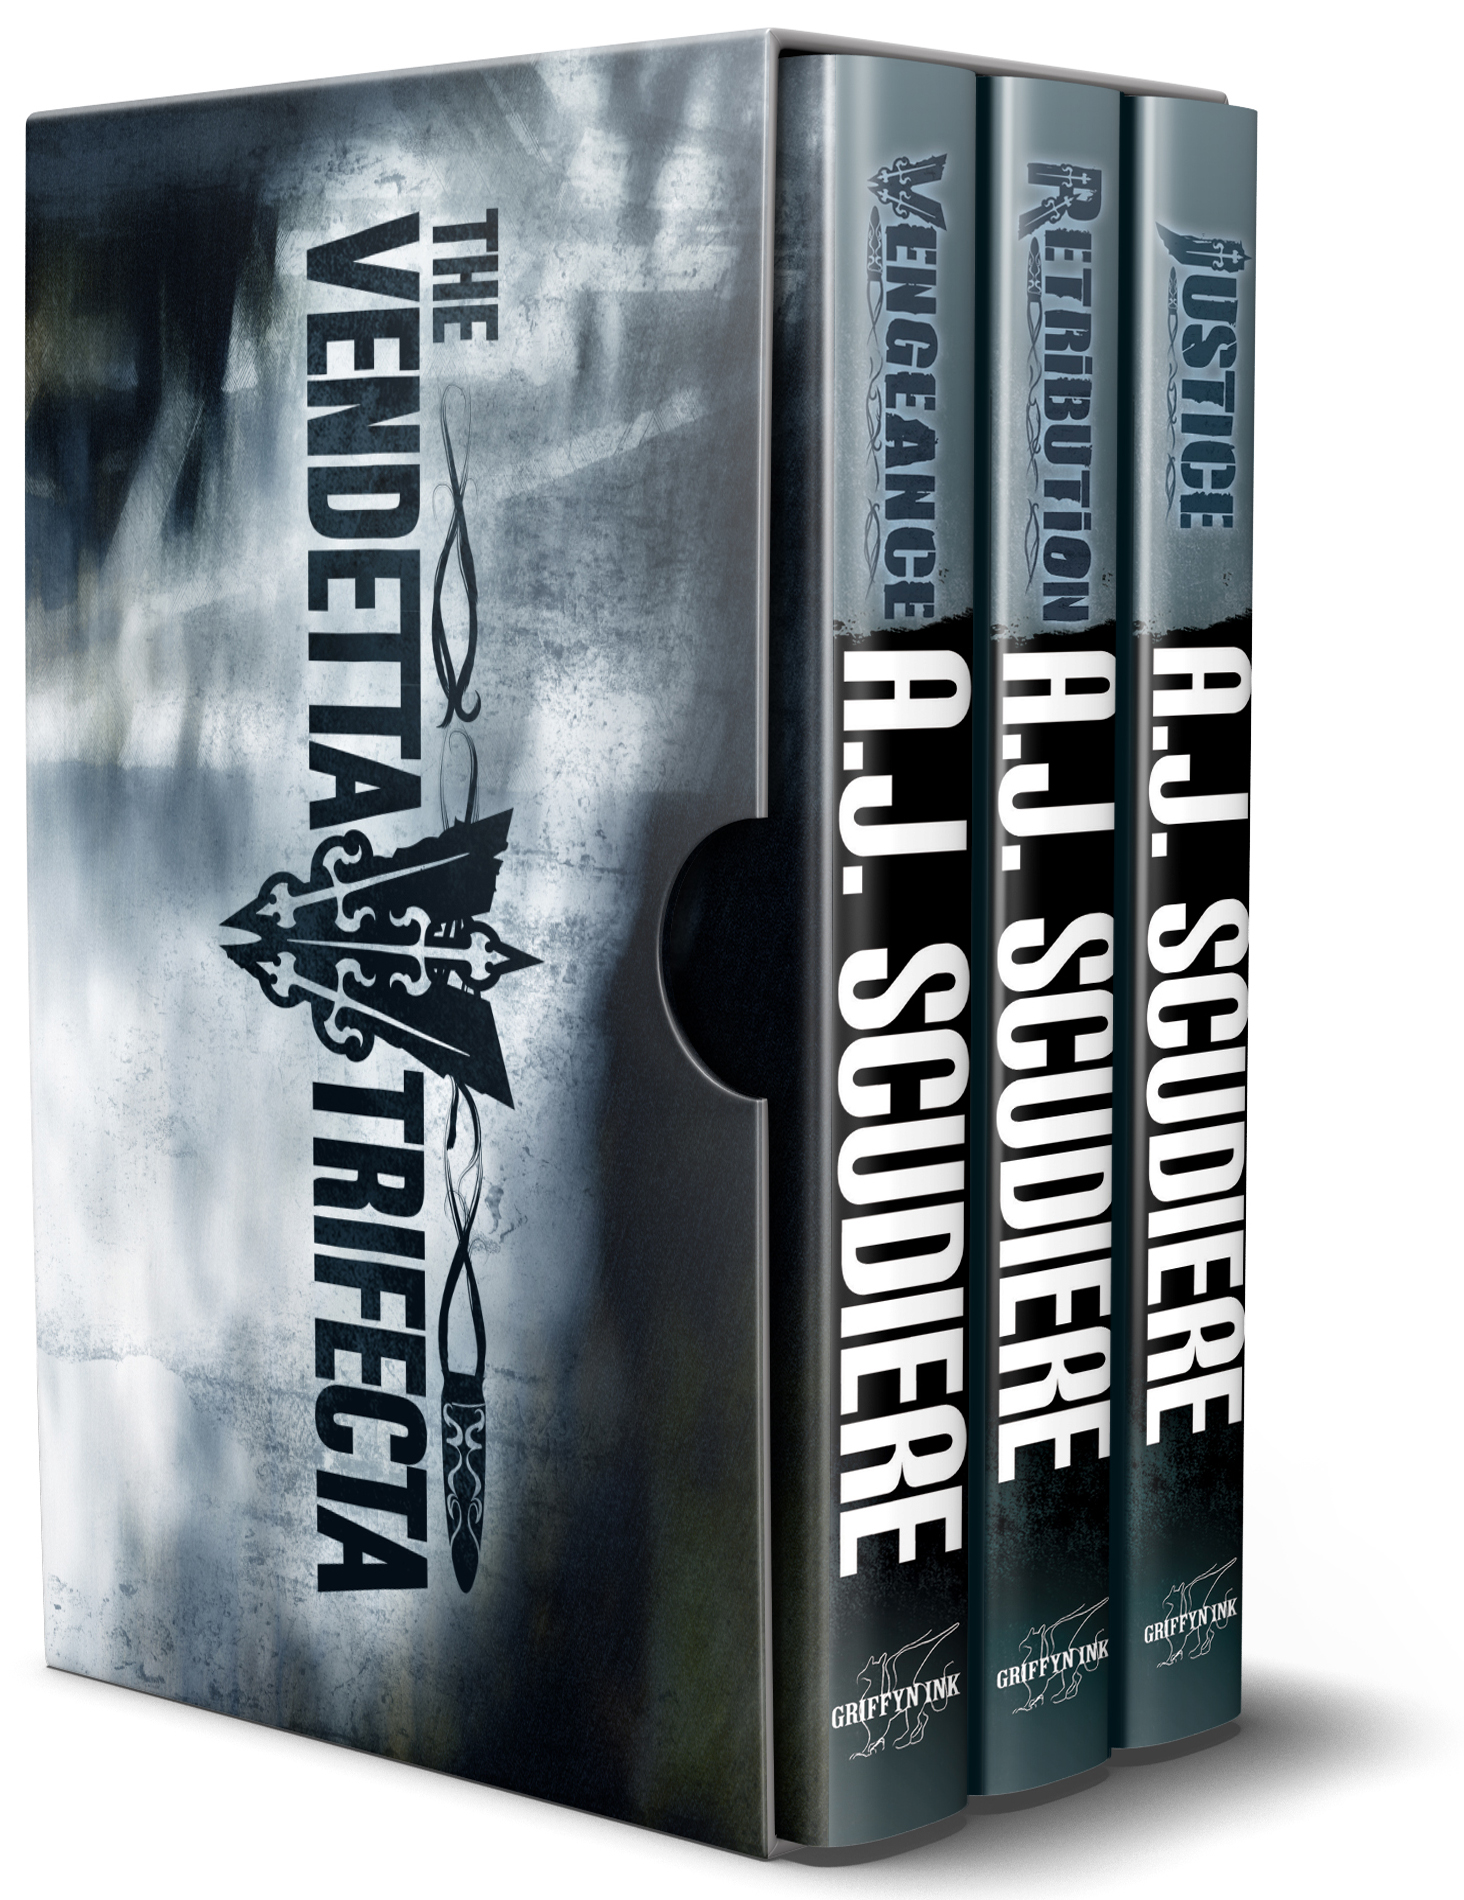 The Vendetta Trifecta Boxed Set